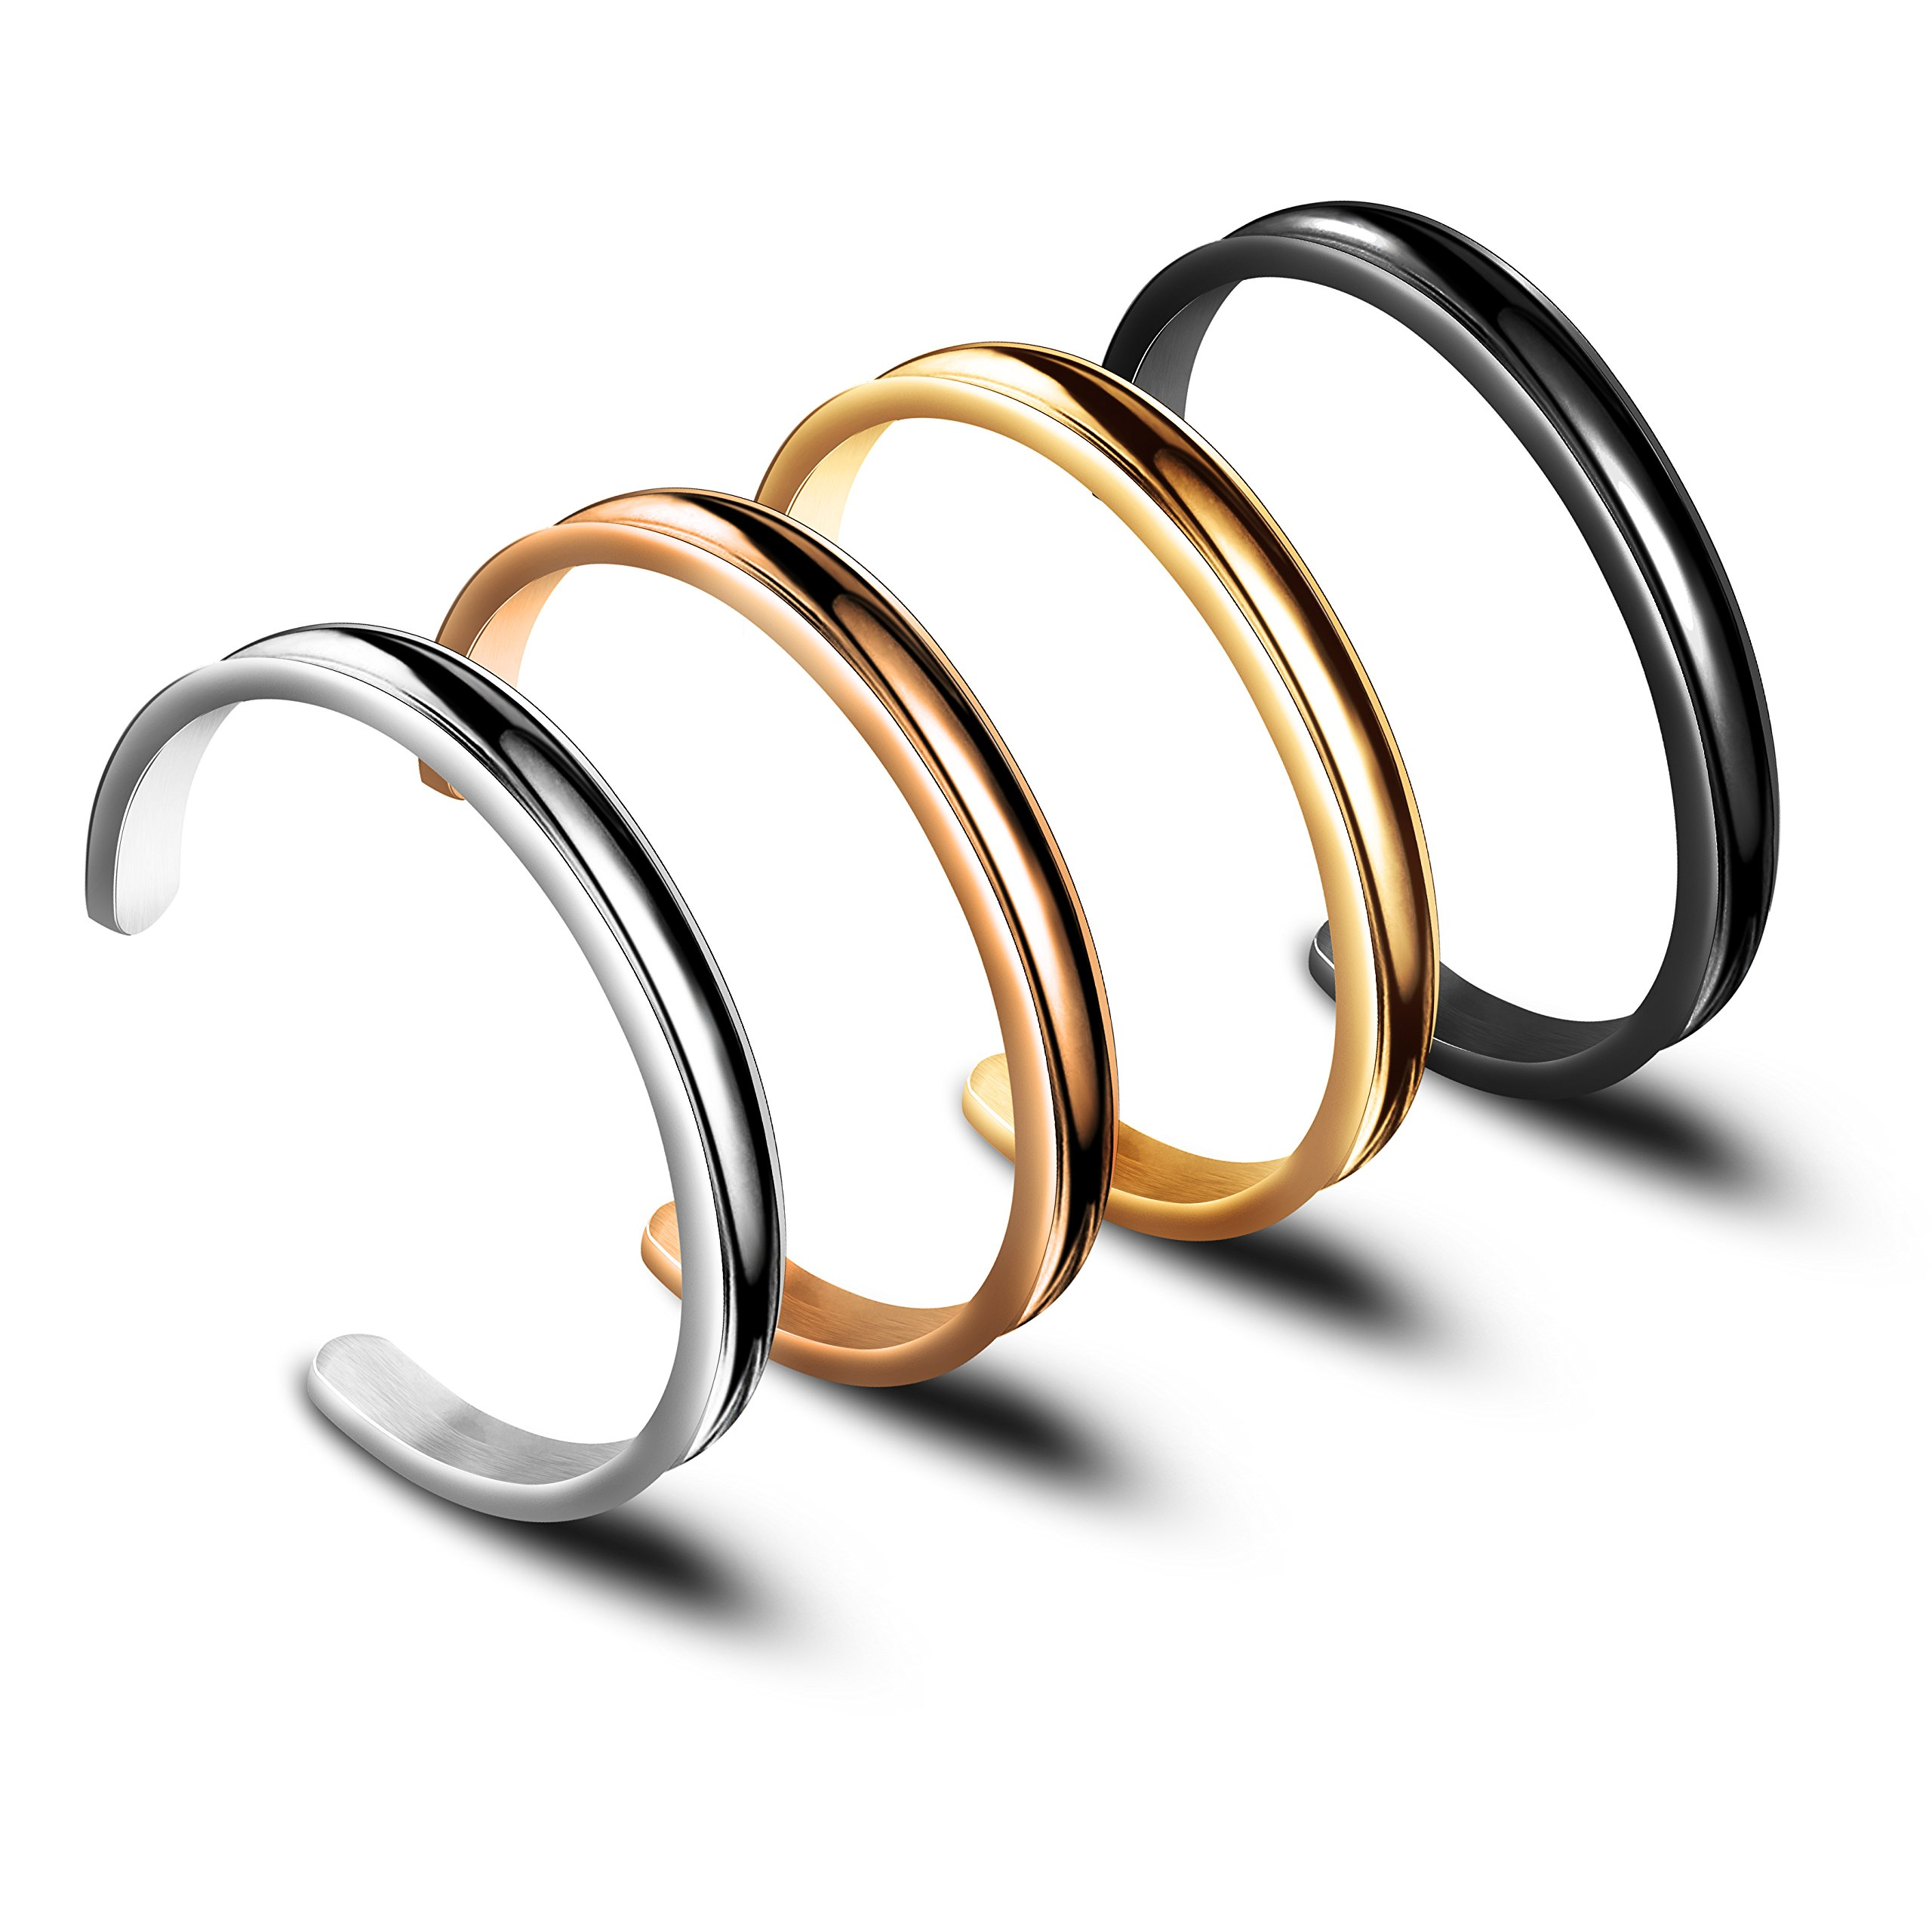 Zuo Bao Hair Tie Bracelet Stainless Steel Grooved Cuff Bangle for Women Girls (4 Colors/Set)